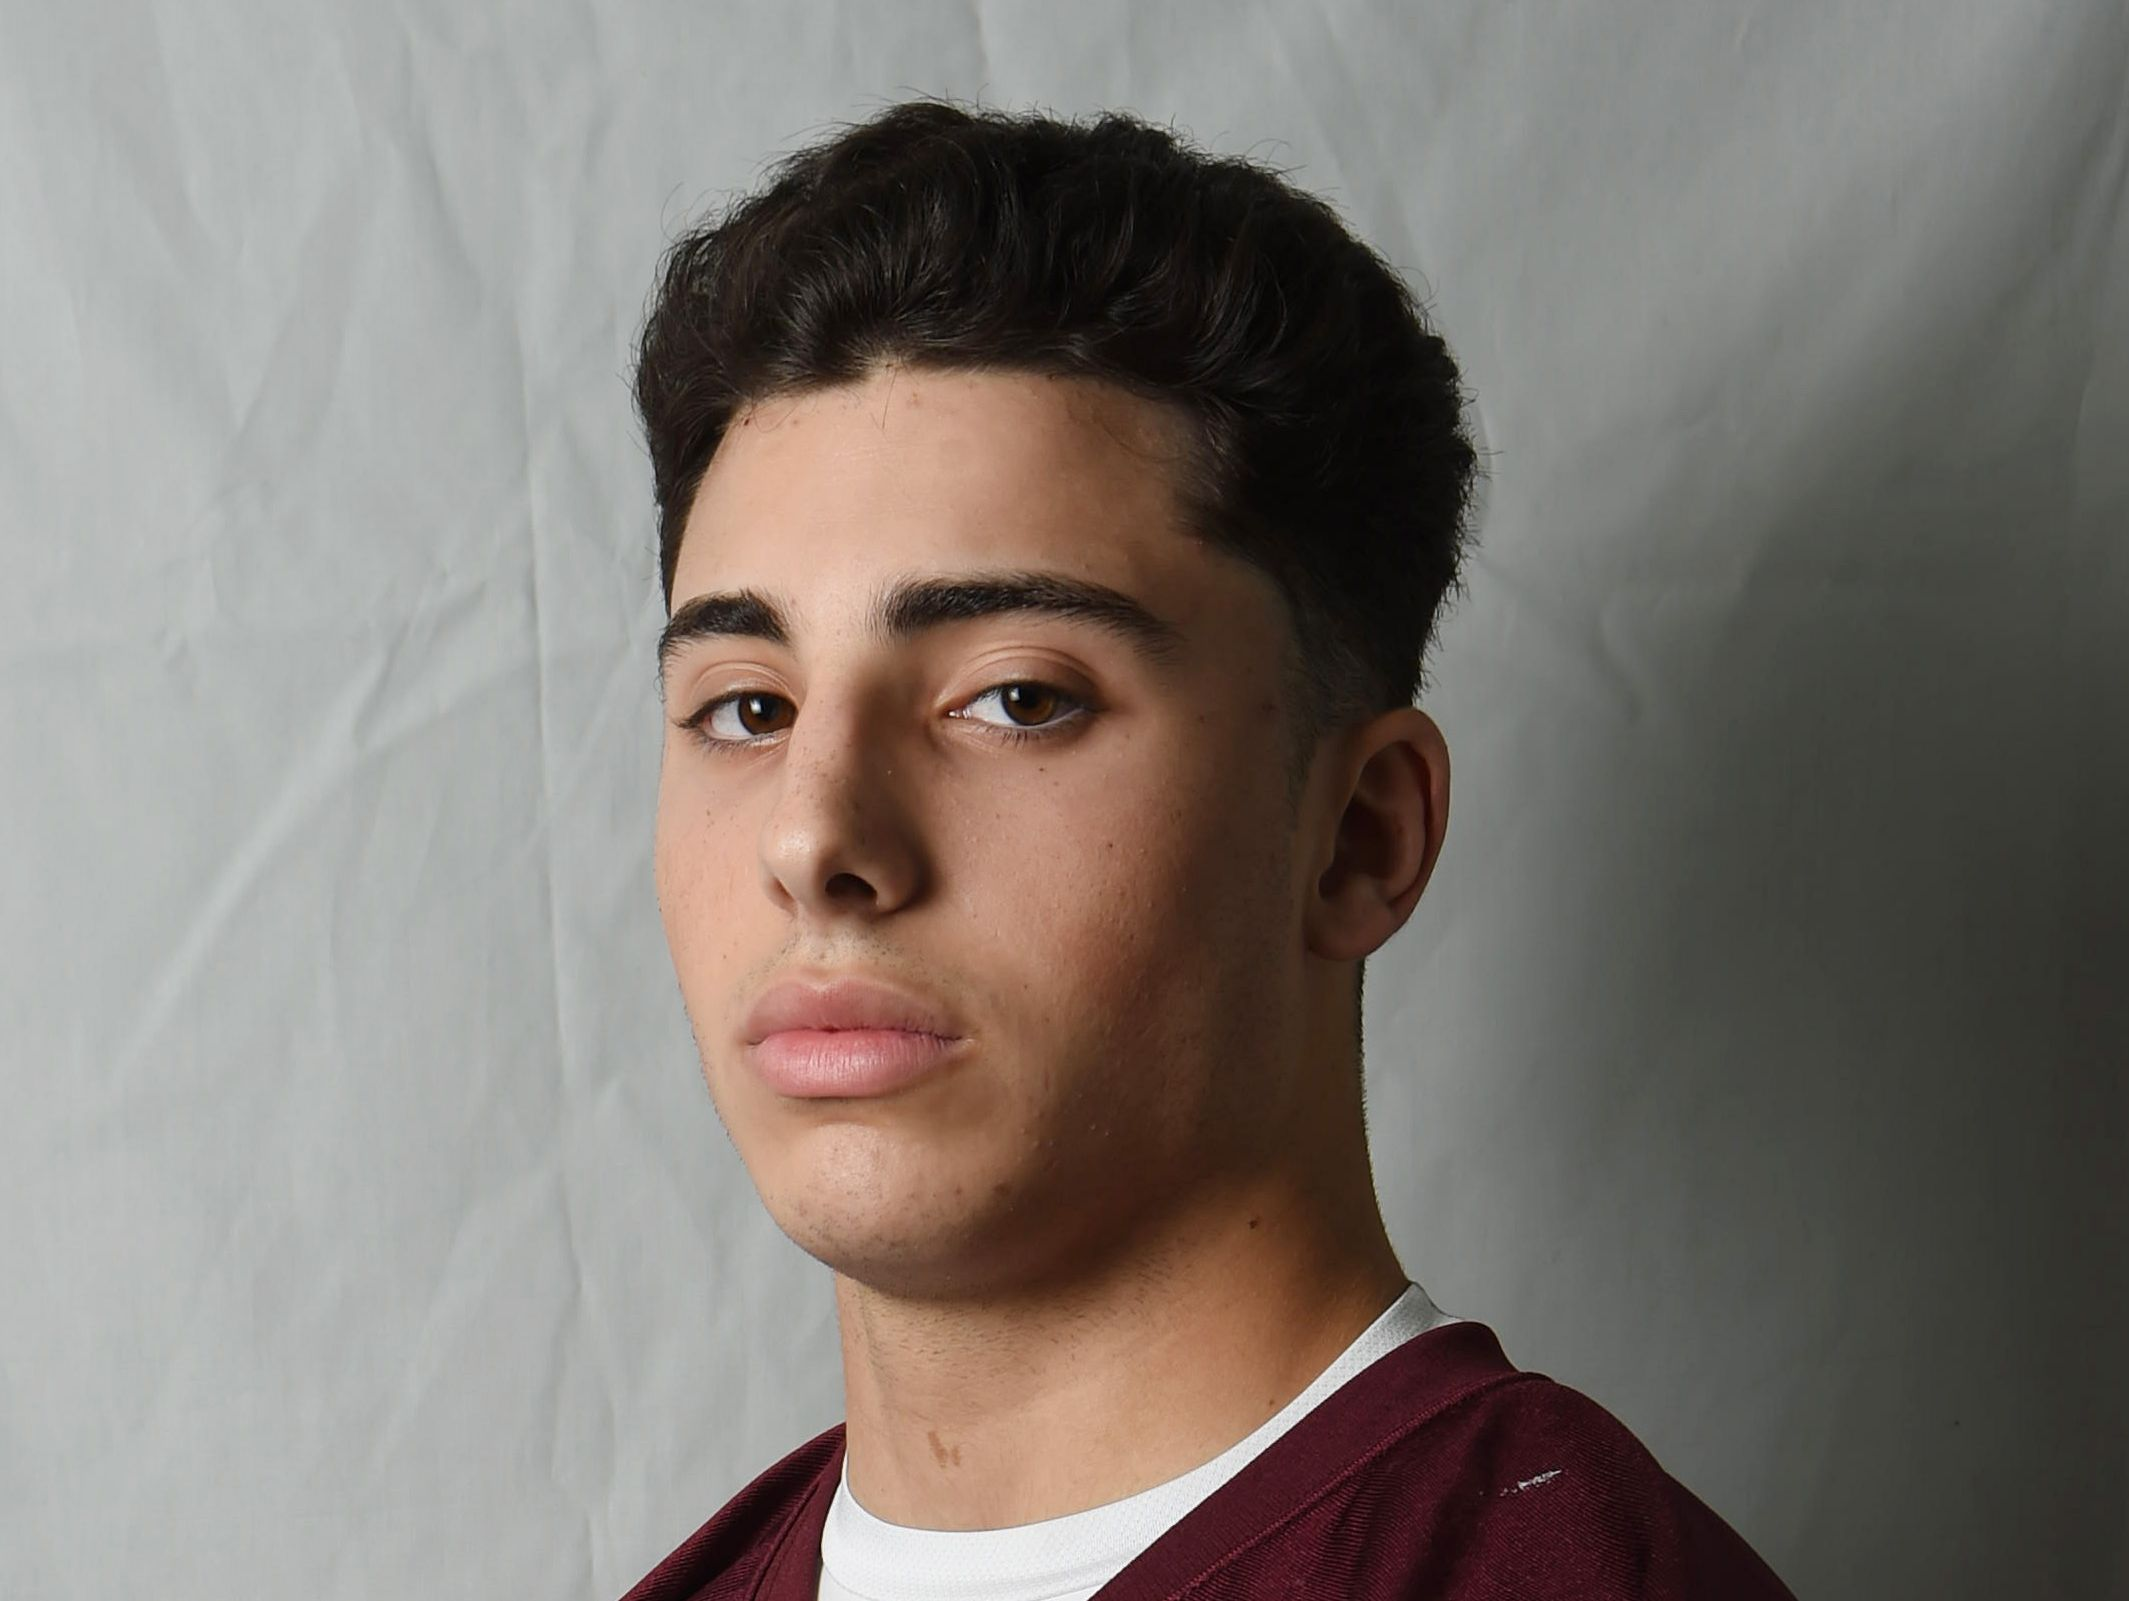 Joseph DiMarco from New Paltz High School is the Defensive Back of the Year.